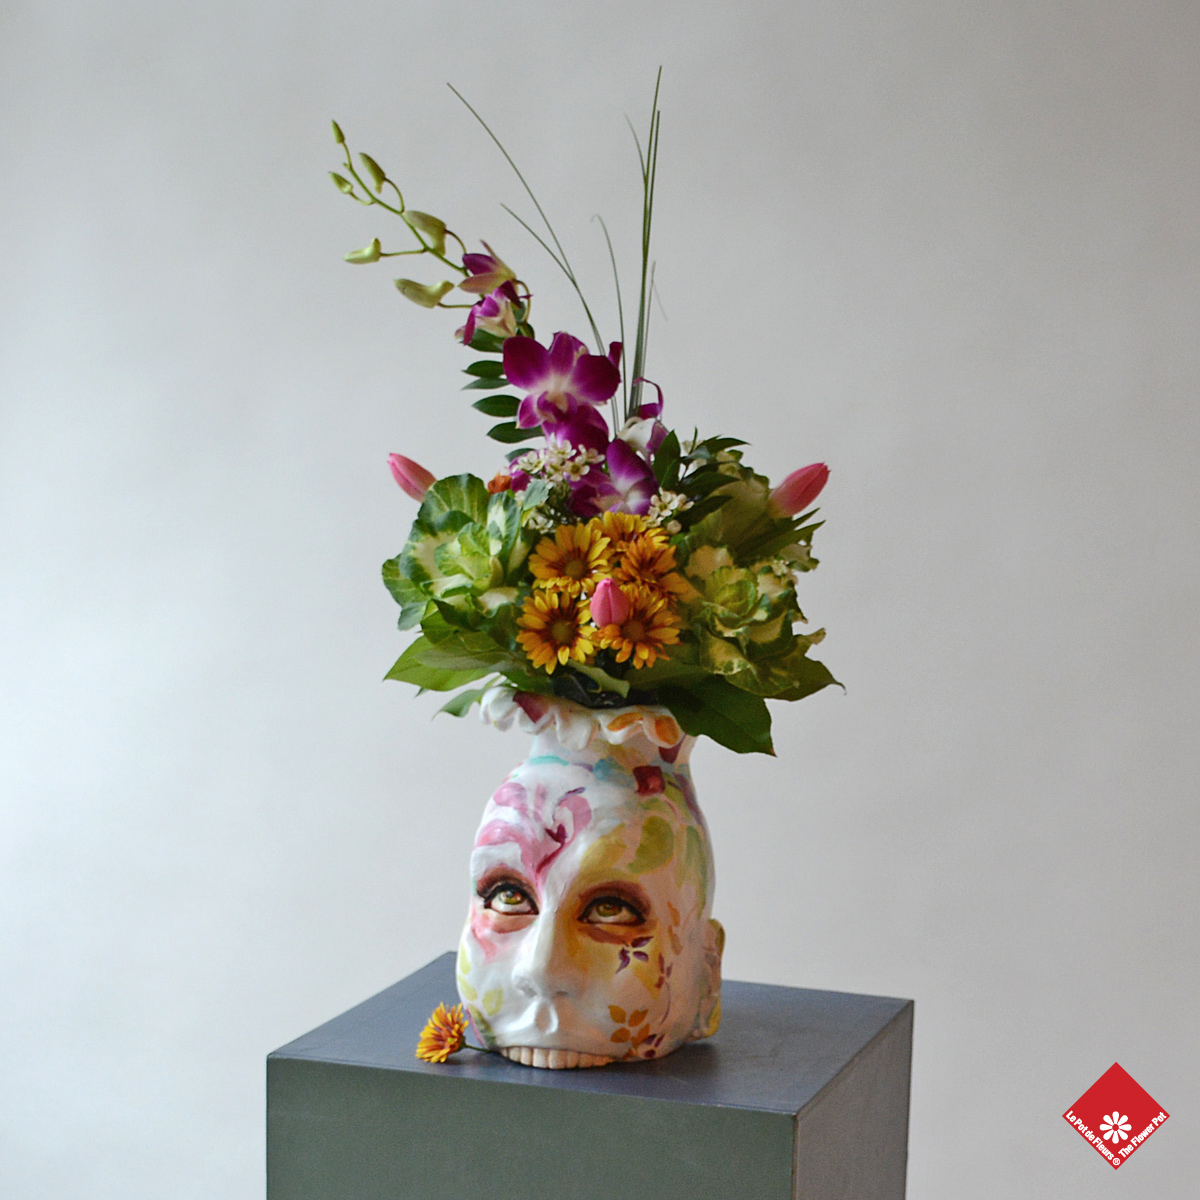 A client gave us inspiration for a flower bouquet with this unique and creepy colourful vase.